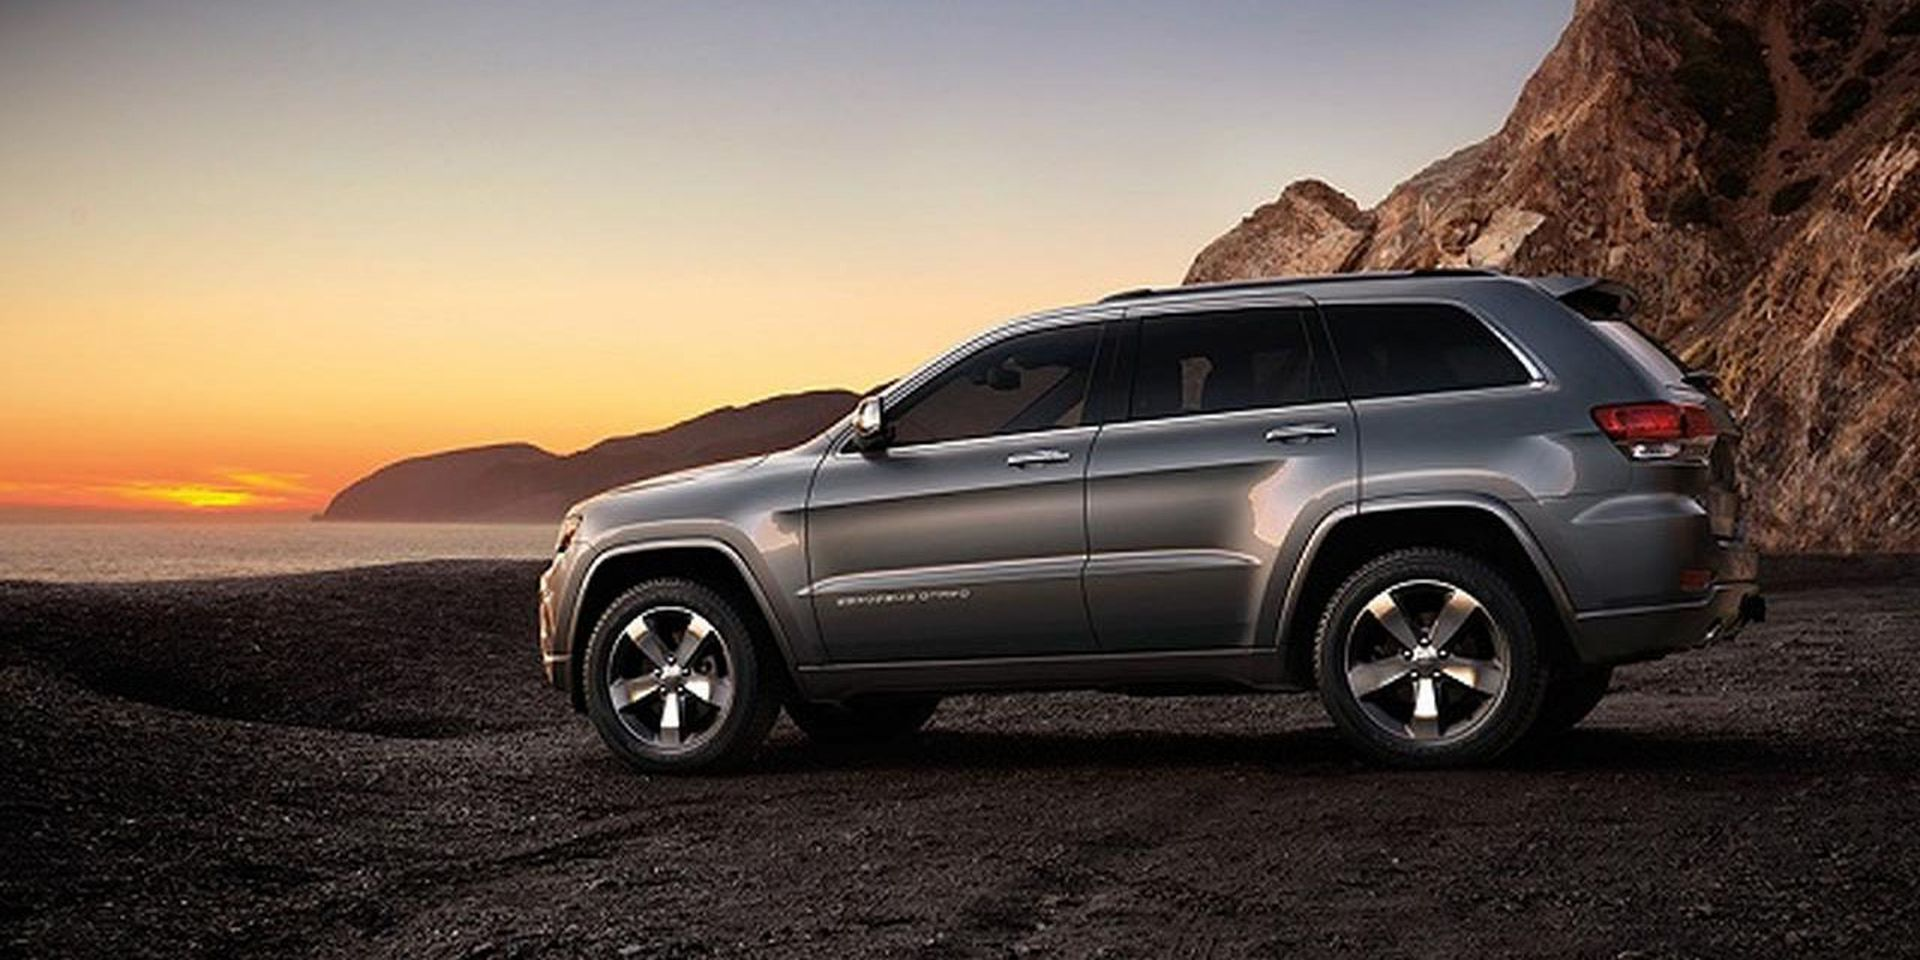 55 The 2020 Jeep Compass Redesign Exterior and Interior in